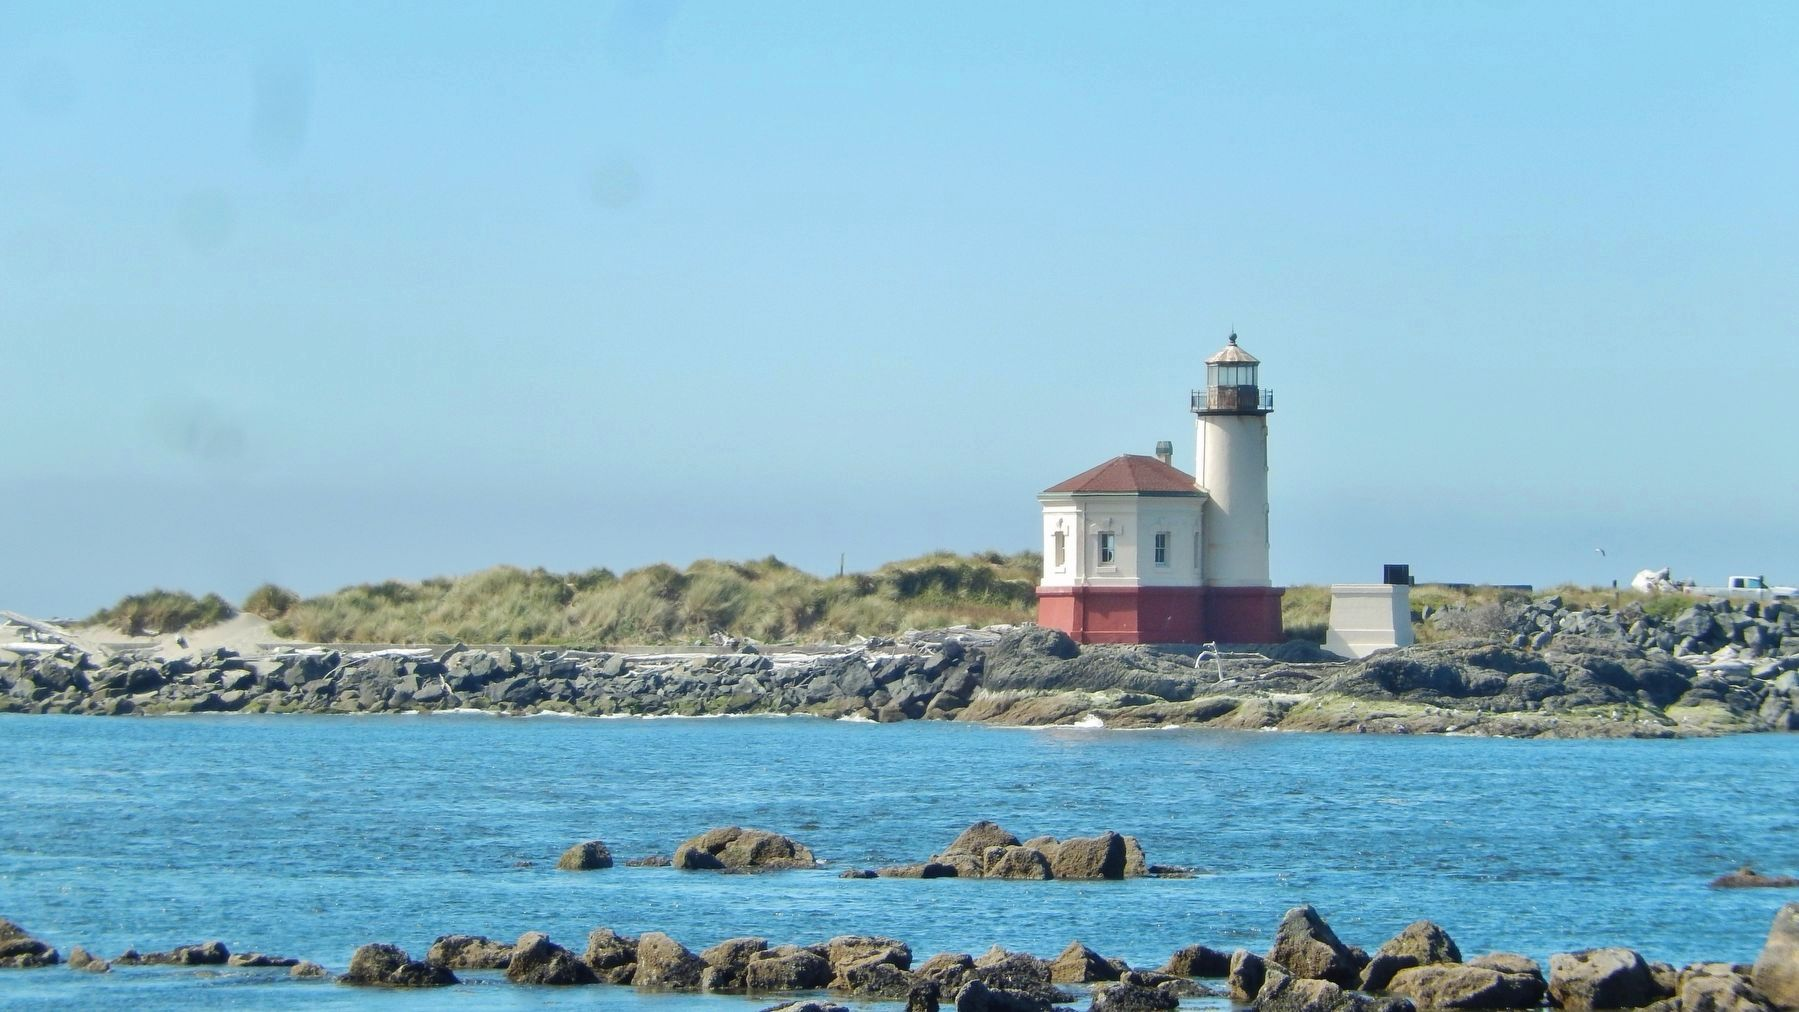 Coquille River Lighthouse (<i>south side; from across Coquille River mouth</i>) image. Click for full size.